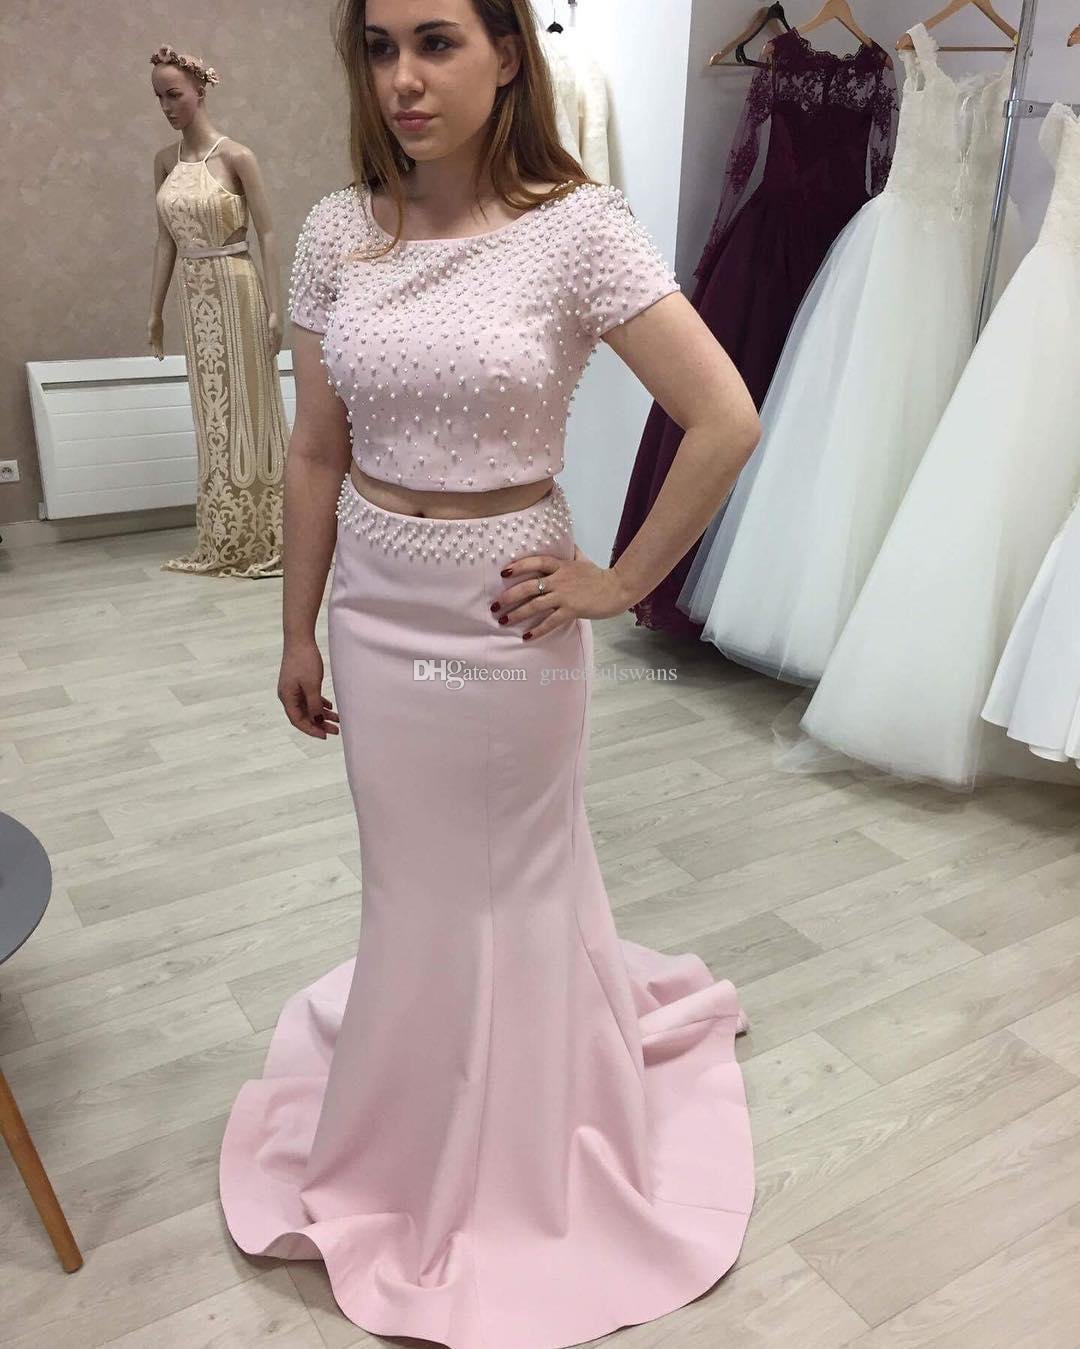 3392ae48c72 Two Piece Pink Formal Dresses Scoop Short Sleeve Mermaid Evening Dresses  Pearls Beaded Sparkly Evening Party Dresses V Back Graduation Gowns Simple  Evening ...